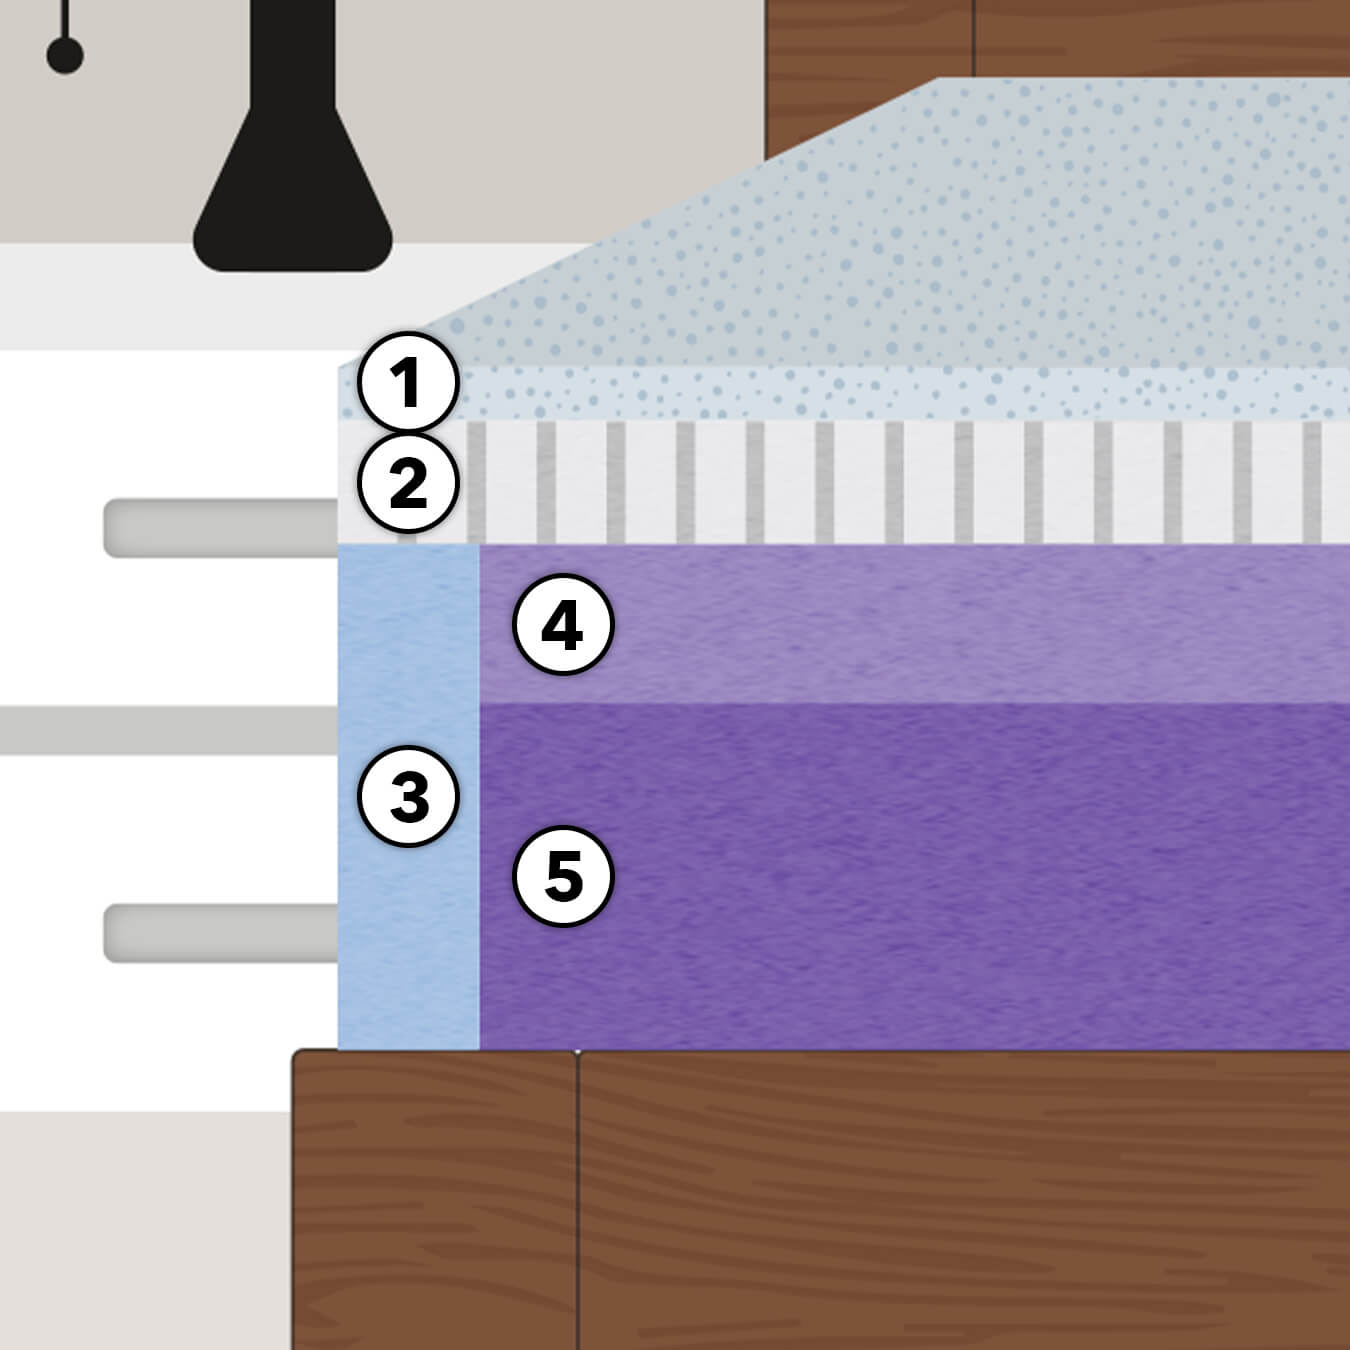 The five inside layers of the Zephyr mattress